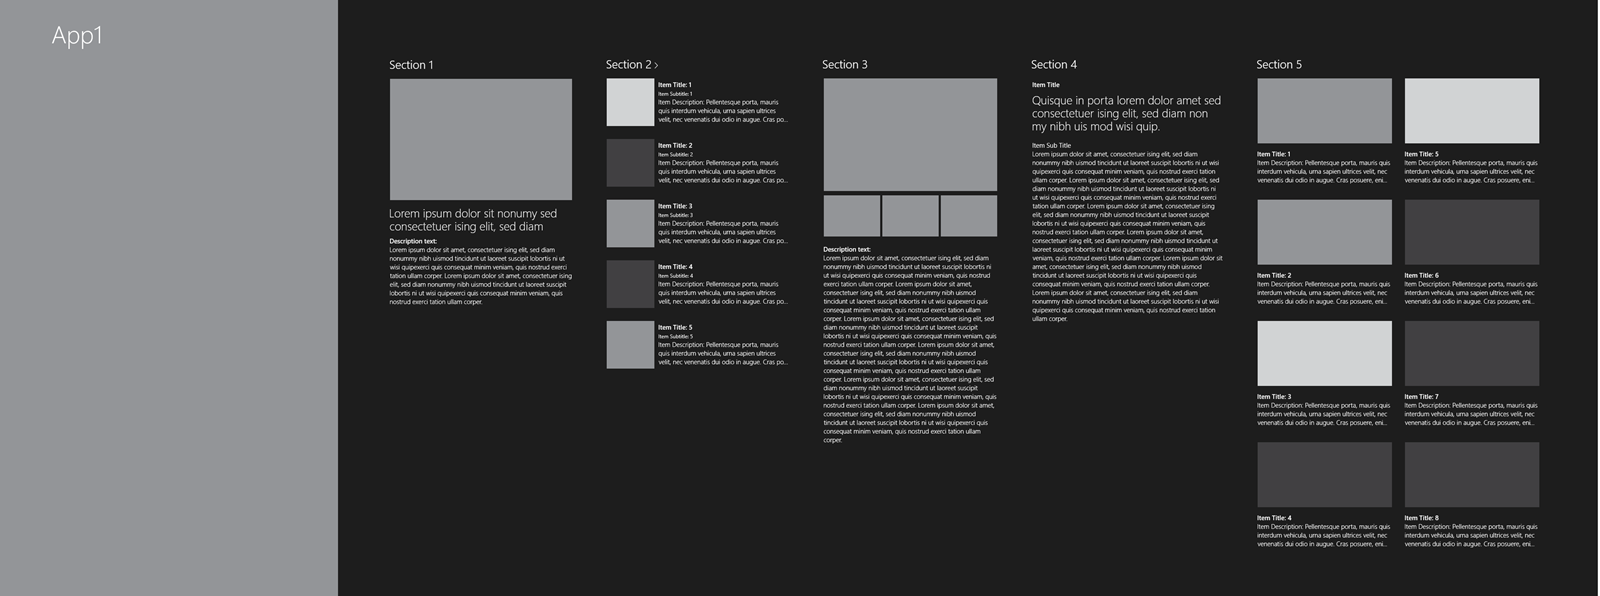 Designing the hub experience for Windows Store creative (art, music ...